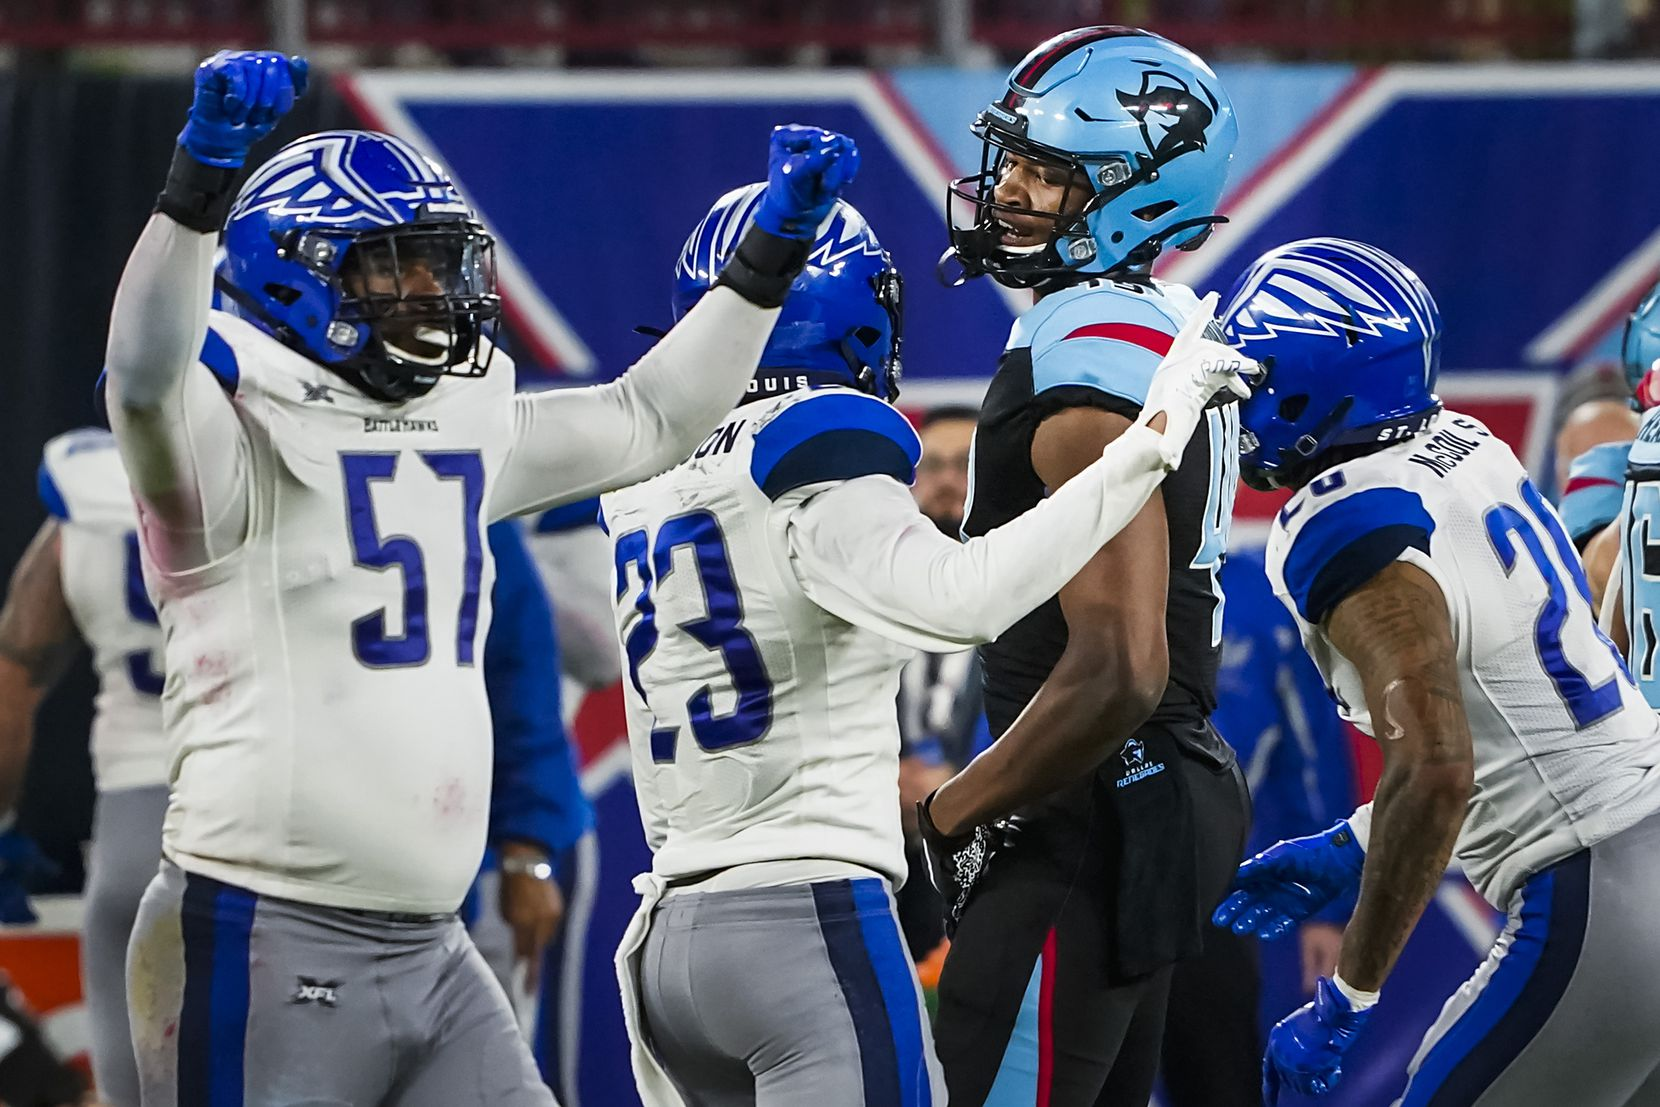 Dallas Renegades tight end Donald Parham (49) looks back as St. Louis Battlehawks linebacker Terence Garvin (57) and safety Kenny Robinson (23) celebrate after an interception in the final minute of an XFL football game at Globe Life Park on Sunday, Feb. 9, 2020, in Arlington.